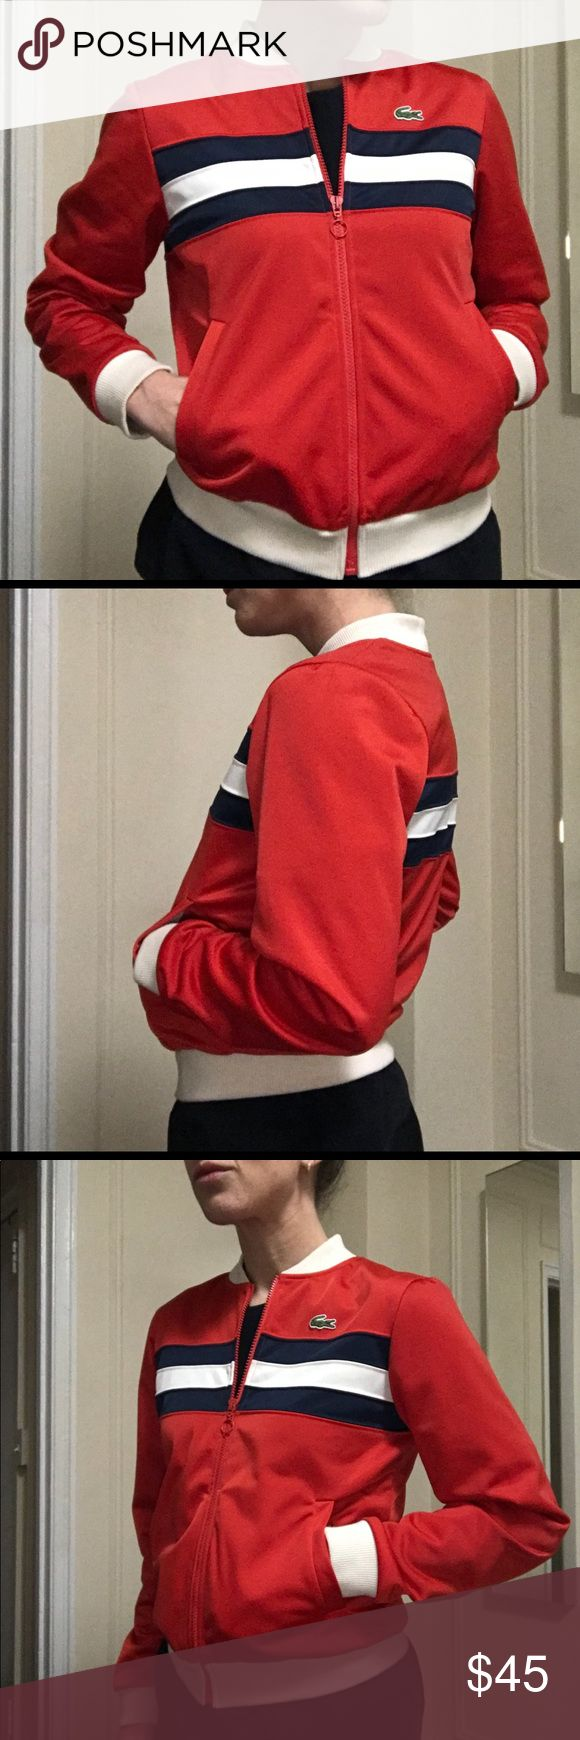 Lacoste Red Navy Stripe Bomber Jacket Small S 38 Lacoste Women's Polyester Varsity Bomber Style Jacket in Red with Navy and Cream Stripes and Cream Ribbed Fabric at Neck, Hem, and Cuffs. Alligator logo on chest. Size 38 (Small). Barely worn. Lacoste Jackets & Coats